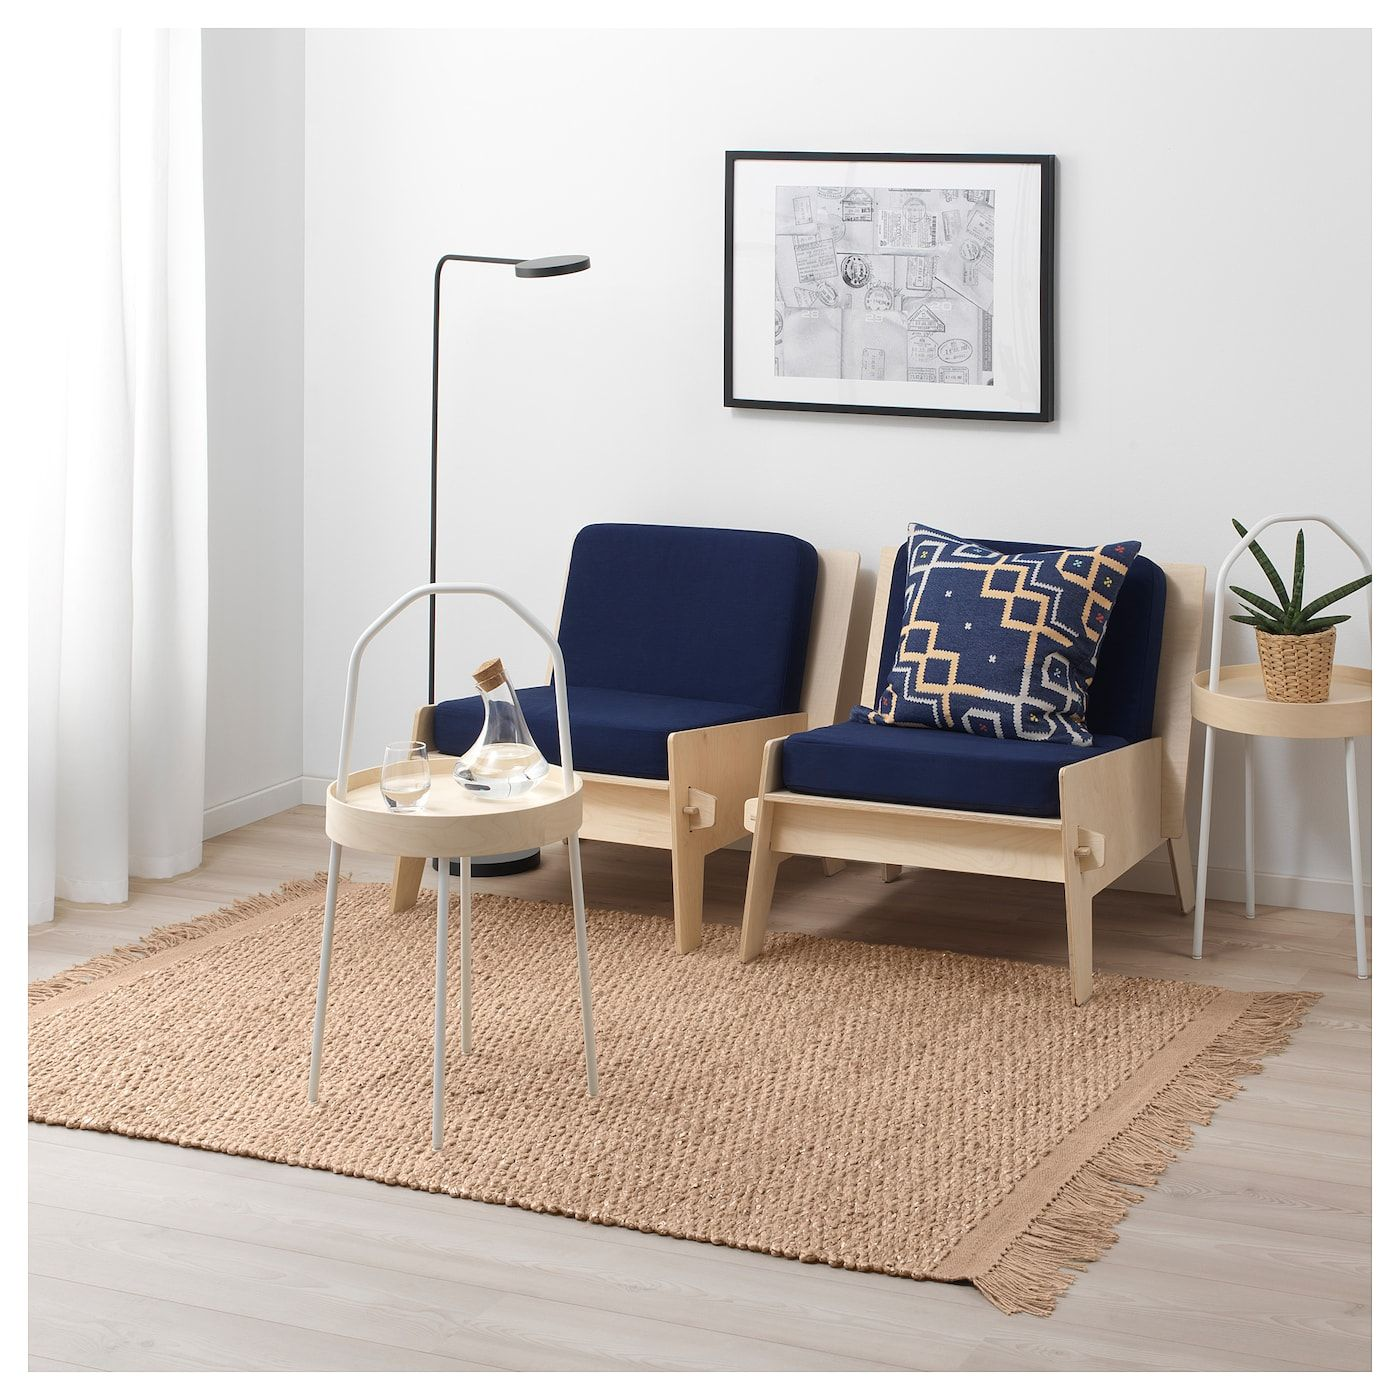 IKEA US Furniture and Home Furnishings | Teppich flach